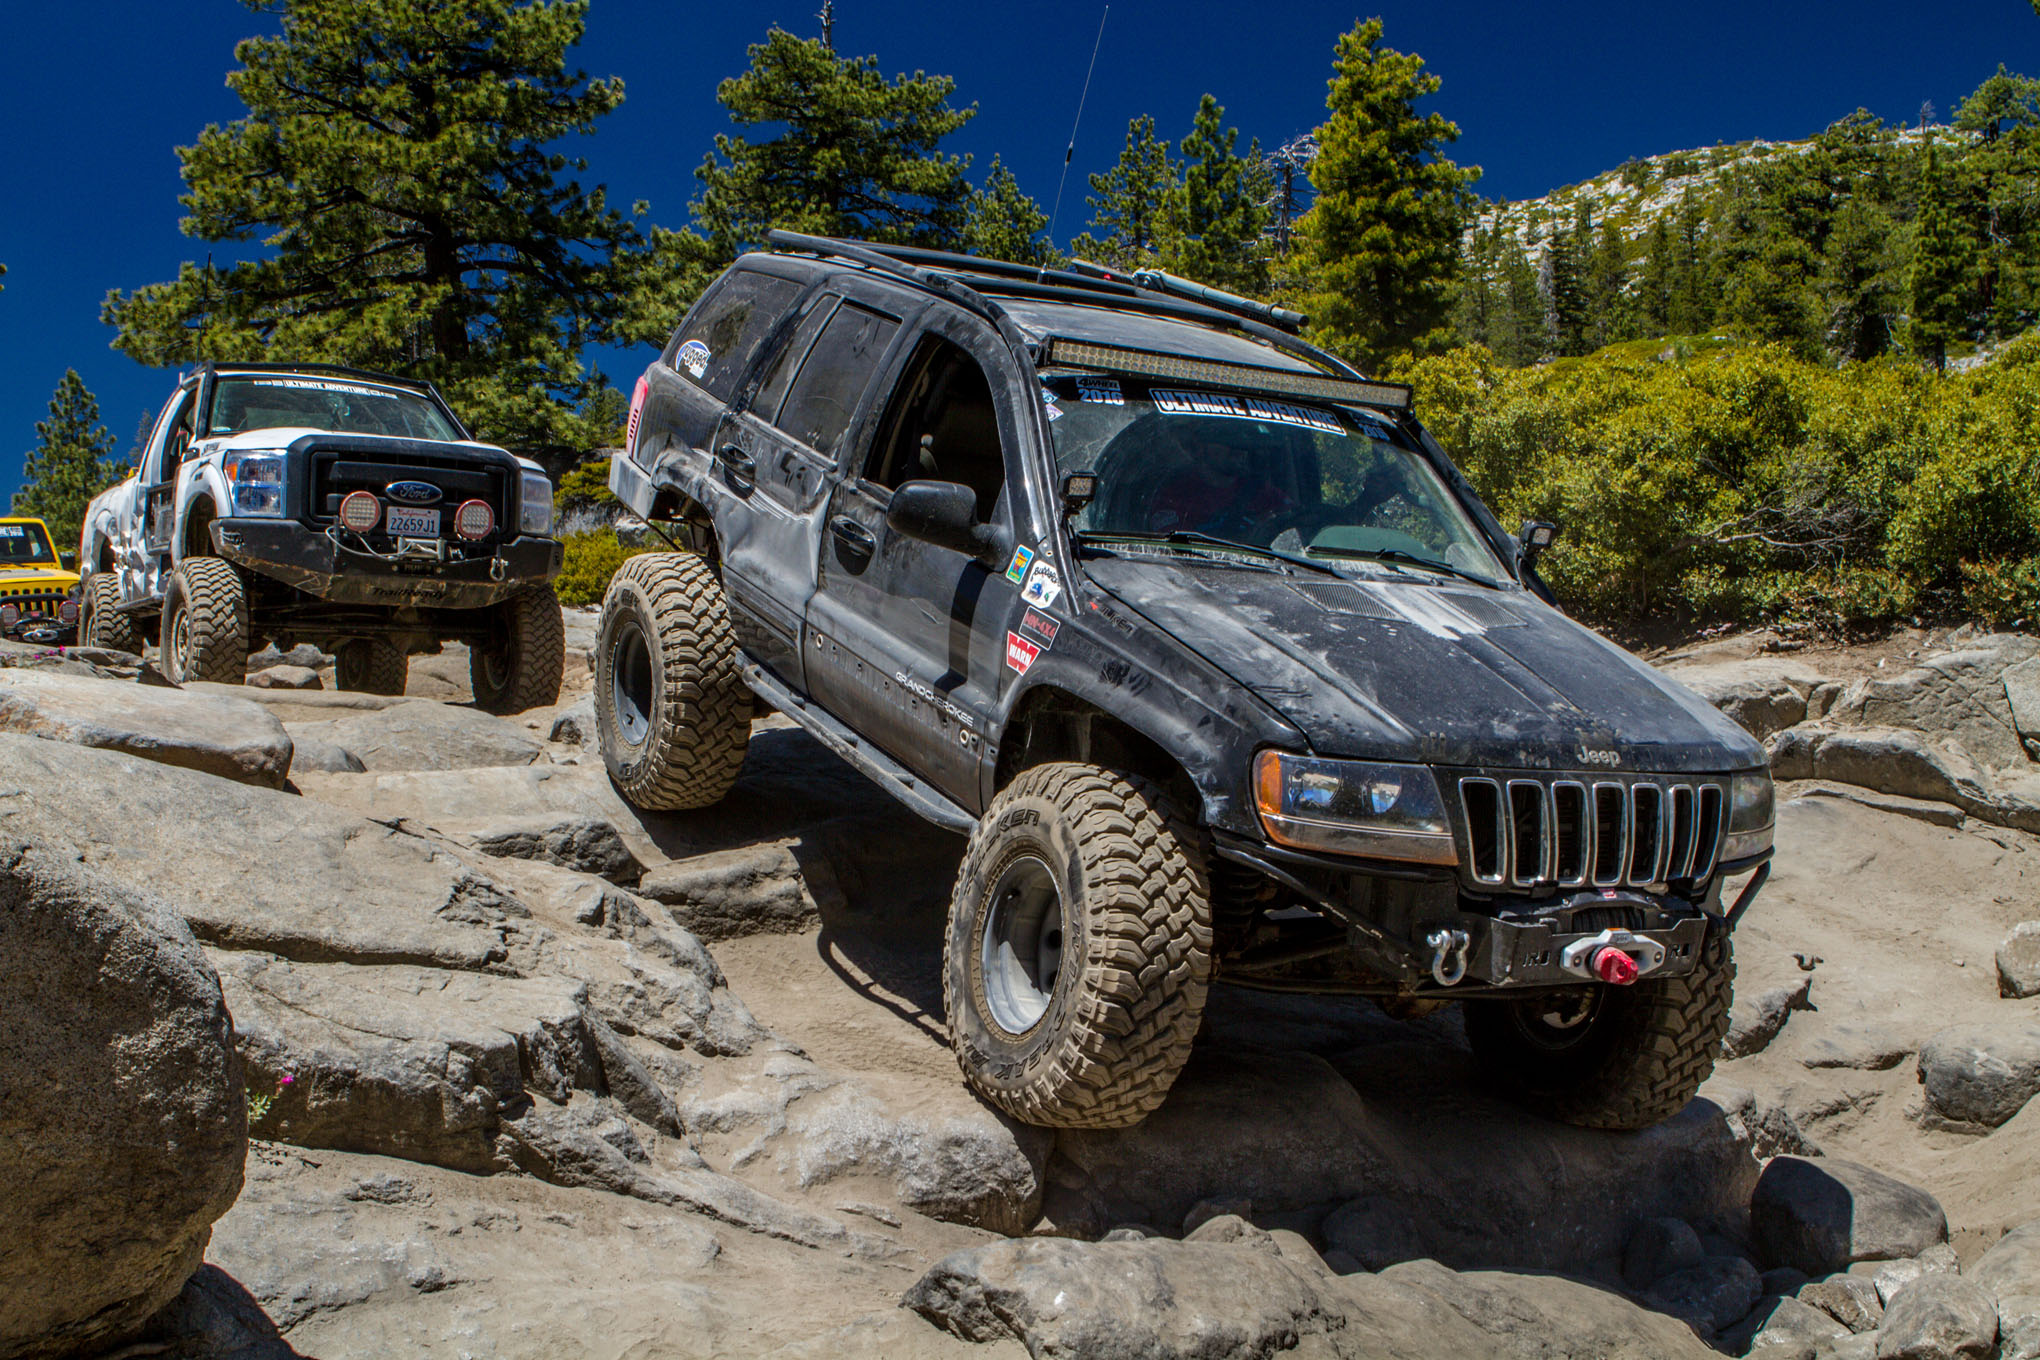 003 2016 Ultimate Adventure vehicles and people